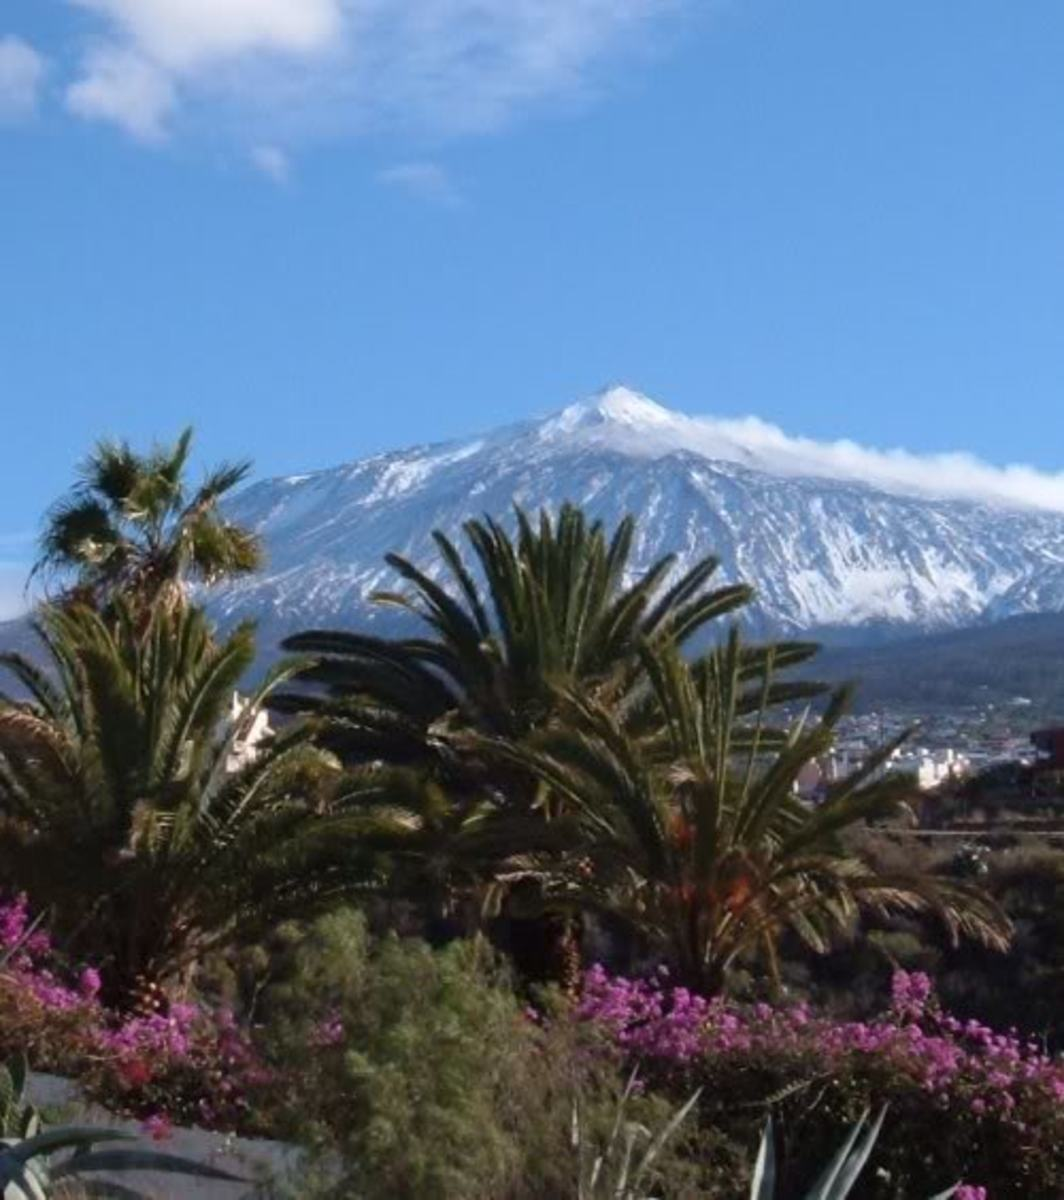 Mt Teide - highest mountain in the Canary Islands and mainland Spain